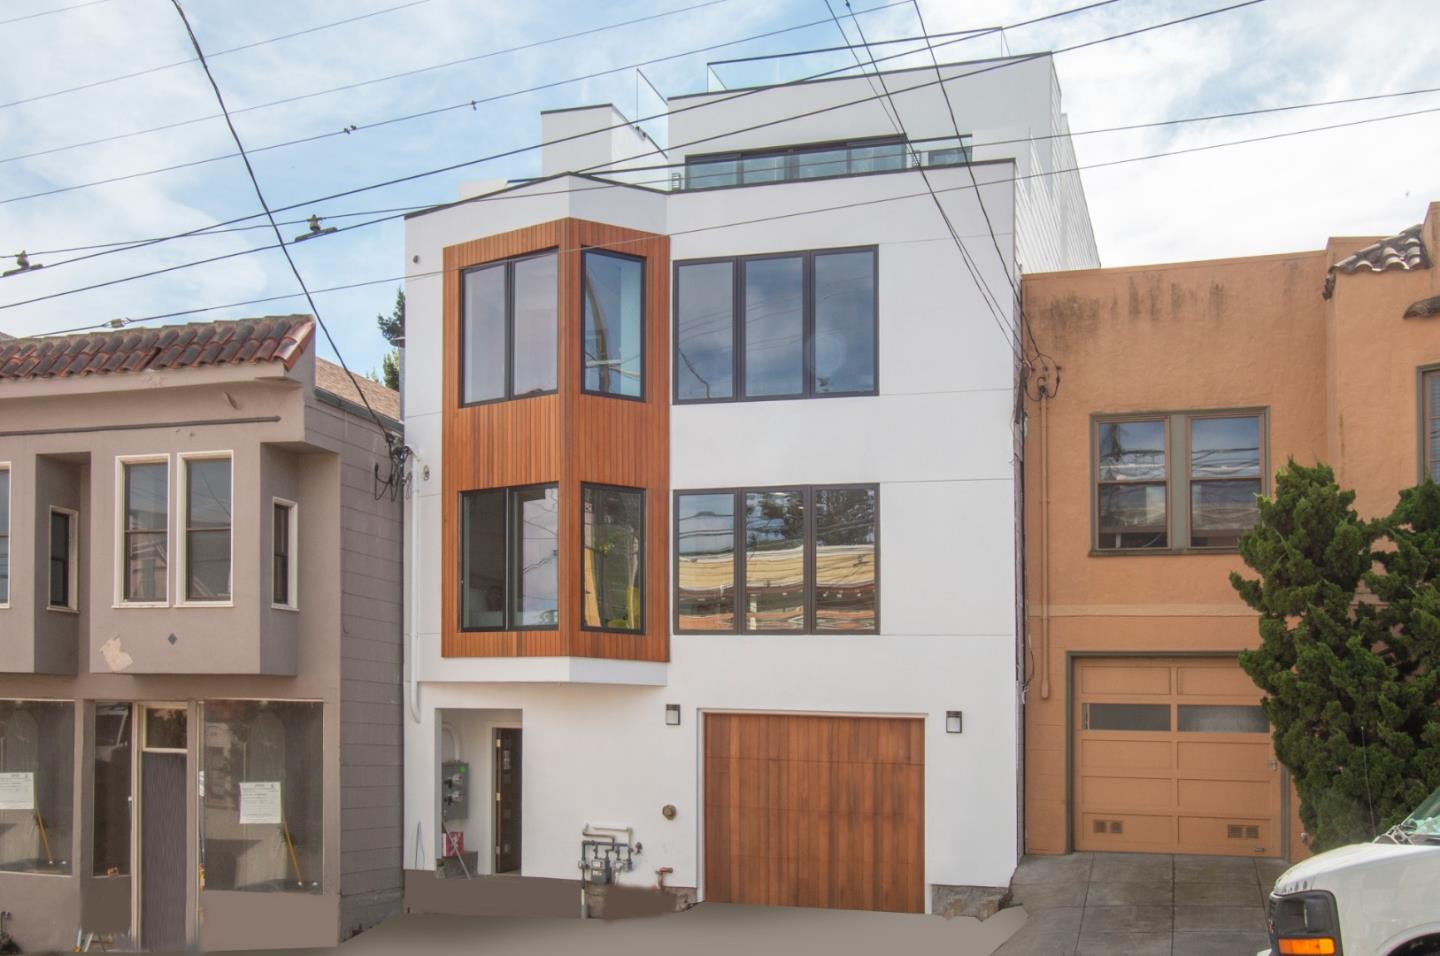 BRAND NEW construction! PRIME NOE VALLEY location, close to all amenities! Contemporary 4 level building, 2 floors each unit. Perfect for Owner-Occupiers, TIC Partners, or Investors. Legally 2 units but lives beautifully as a single family home. Very bright, large bedrooms, large bathrooms, 2 car garage, everything new, recess lighting and engineered hardwood floors throughout entire building. All new Thermador appliances! Split A/C+Heat = energy efficient, every room has it's own A/C+ Heat control. Glass railings throughout interior and exterior. Sit outs at 4 levels! 489 30th St, Lower Unit (Floors 1&2): 3BR/2BA + Office, 2070 sqft, chef's kitchen, master suite with large patio. Gorgeous great room! Deck overlooking back patio below. 489A 30th St, Upper unit (Floors 3&4): 3BD/3BA, 2060 sqft, large gorgeous great room going out to tiled balcony with glass railings, chef's kitchen, master suite with views and balcony, luxury ONE OF A KIND roof terrace, AMAZING PANORAMIC VIEWS!